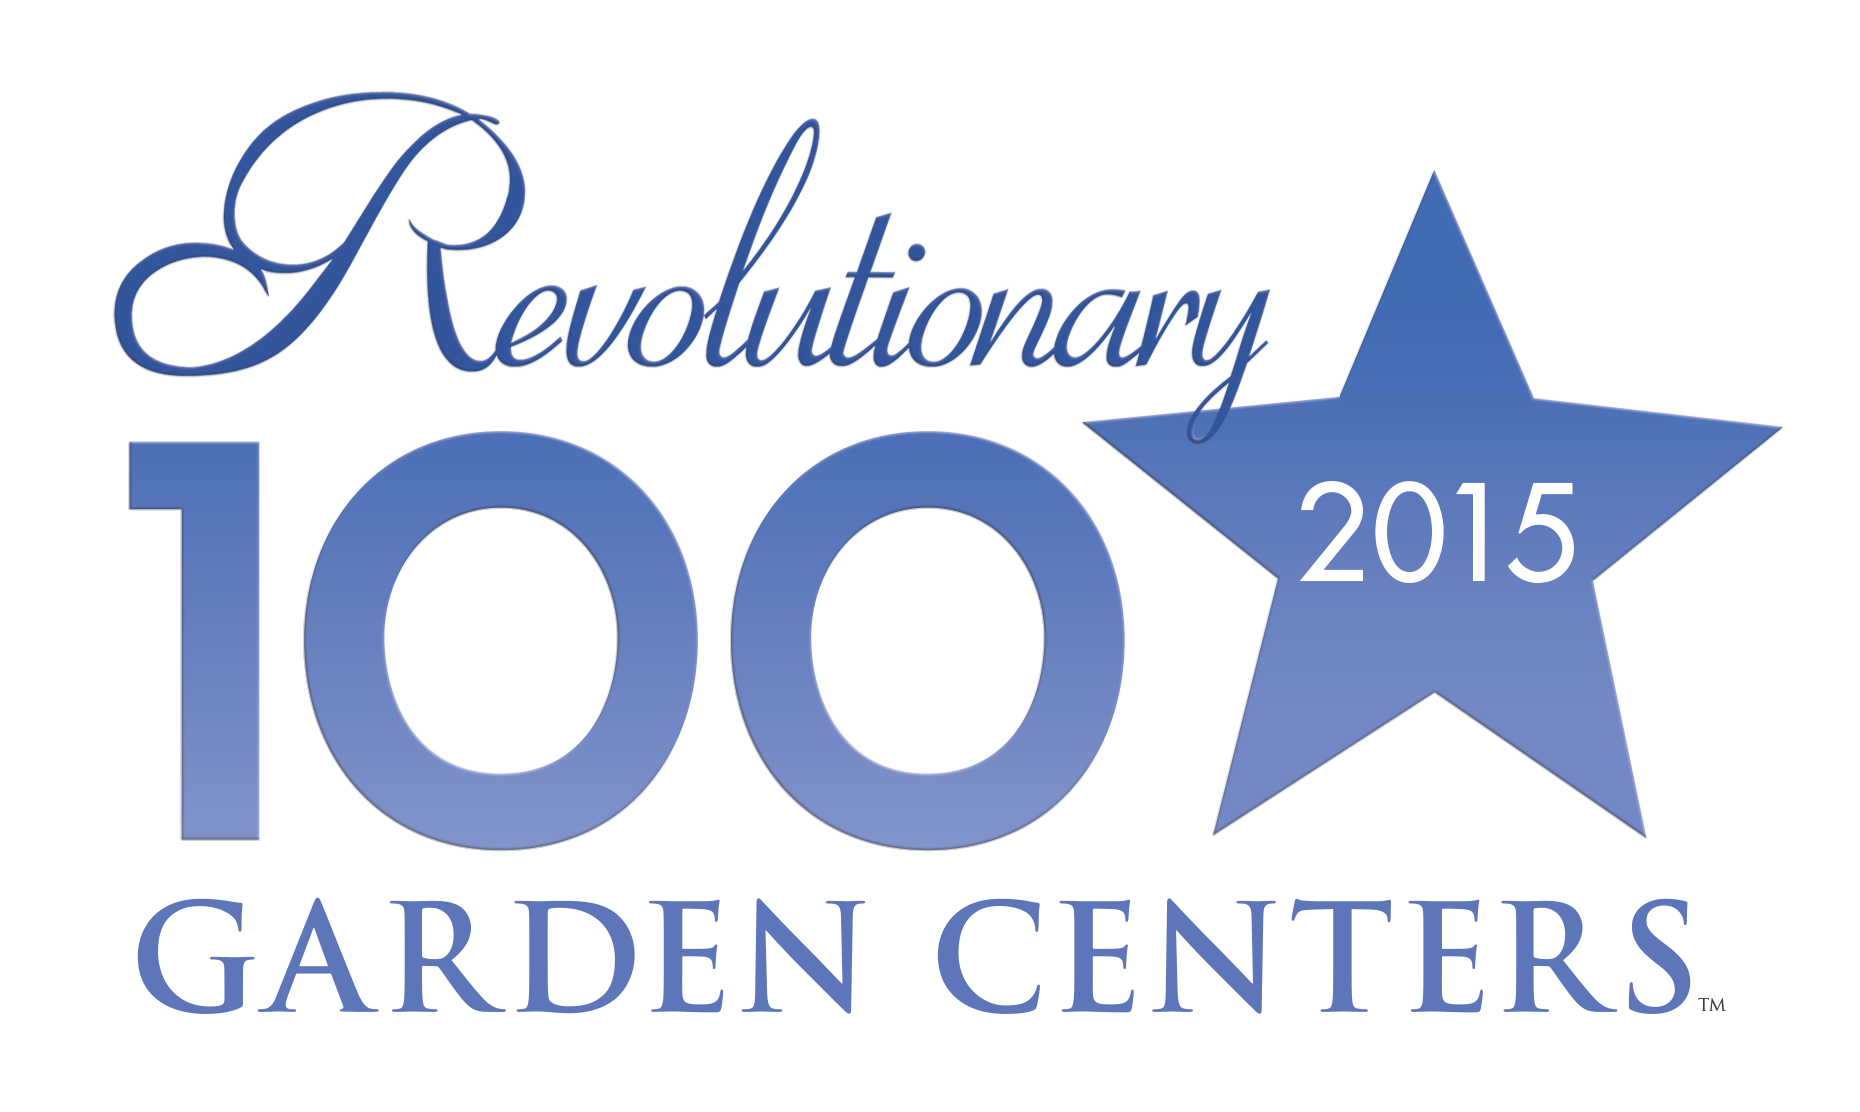 TGC-Revolutionary-100-logo-Transparent-Background1